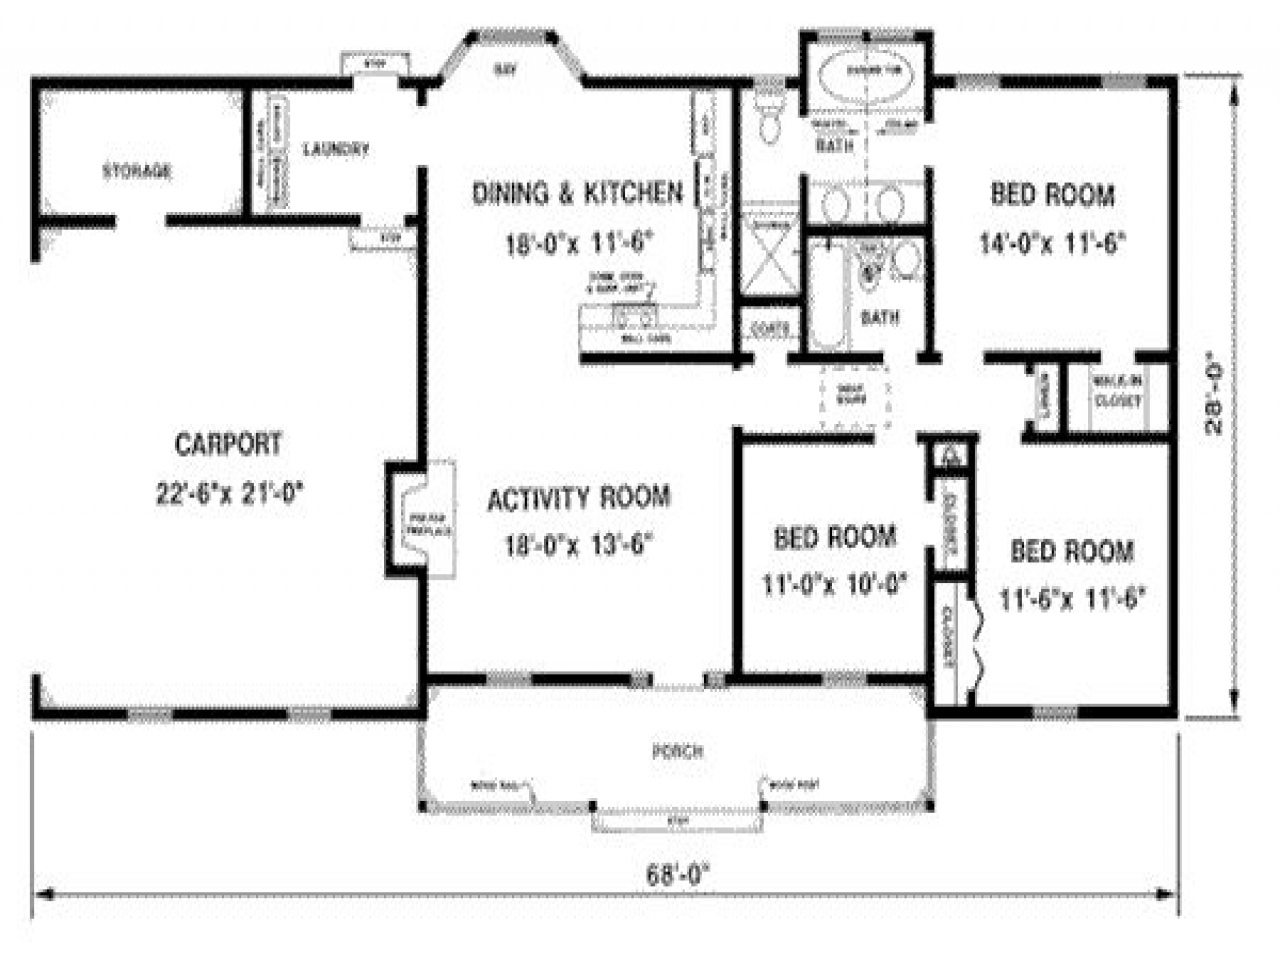 1500 sq ft house plans 1300 square feet floor plan http for 1300 sq ft house plans 2 story